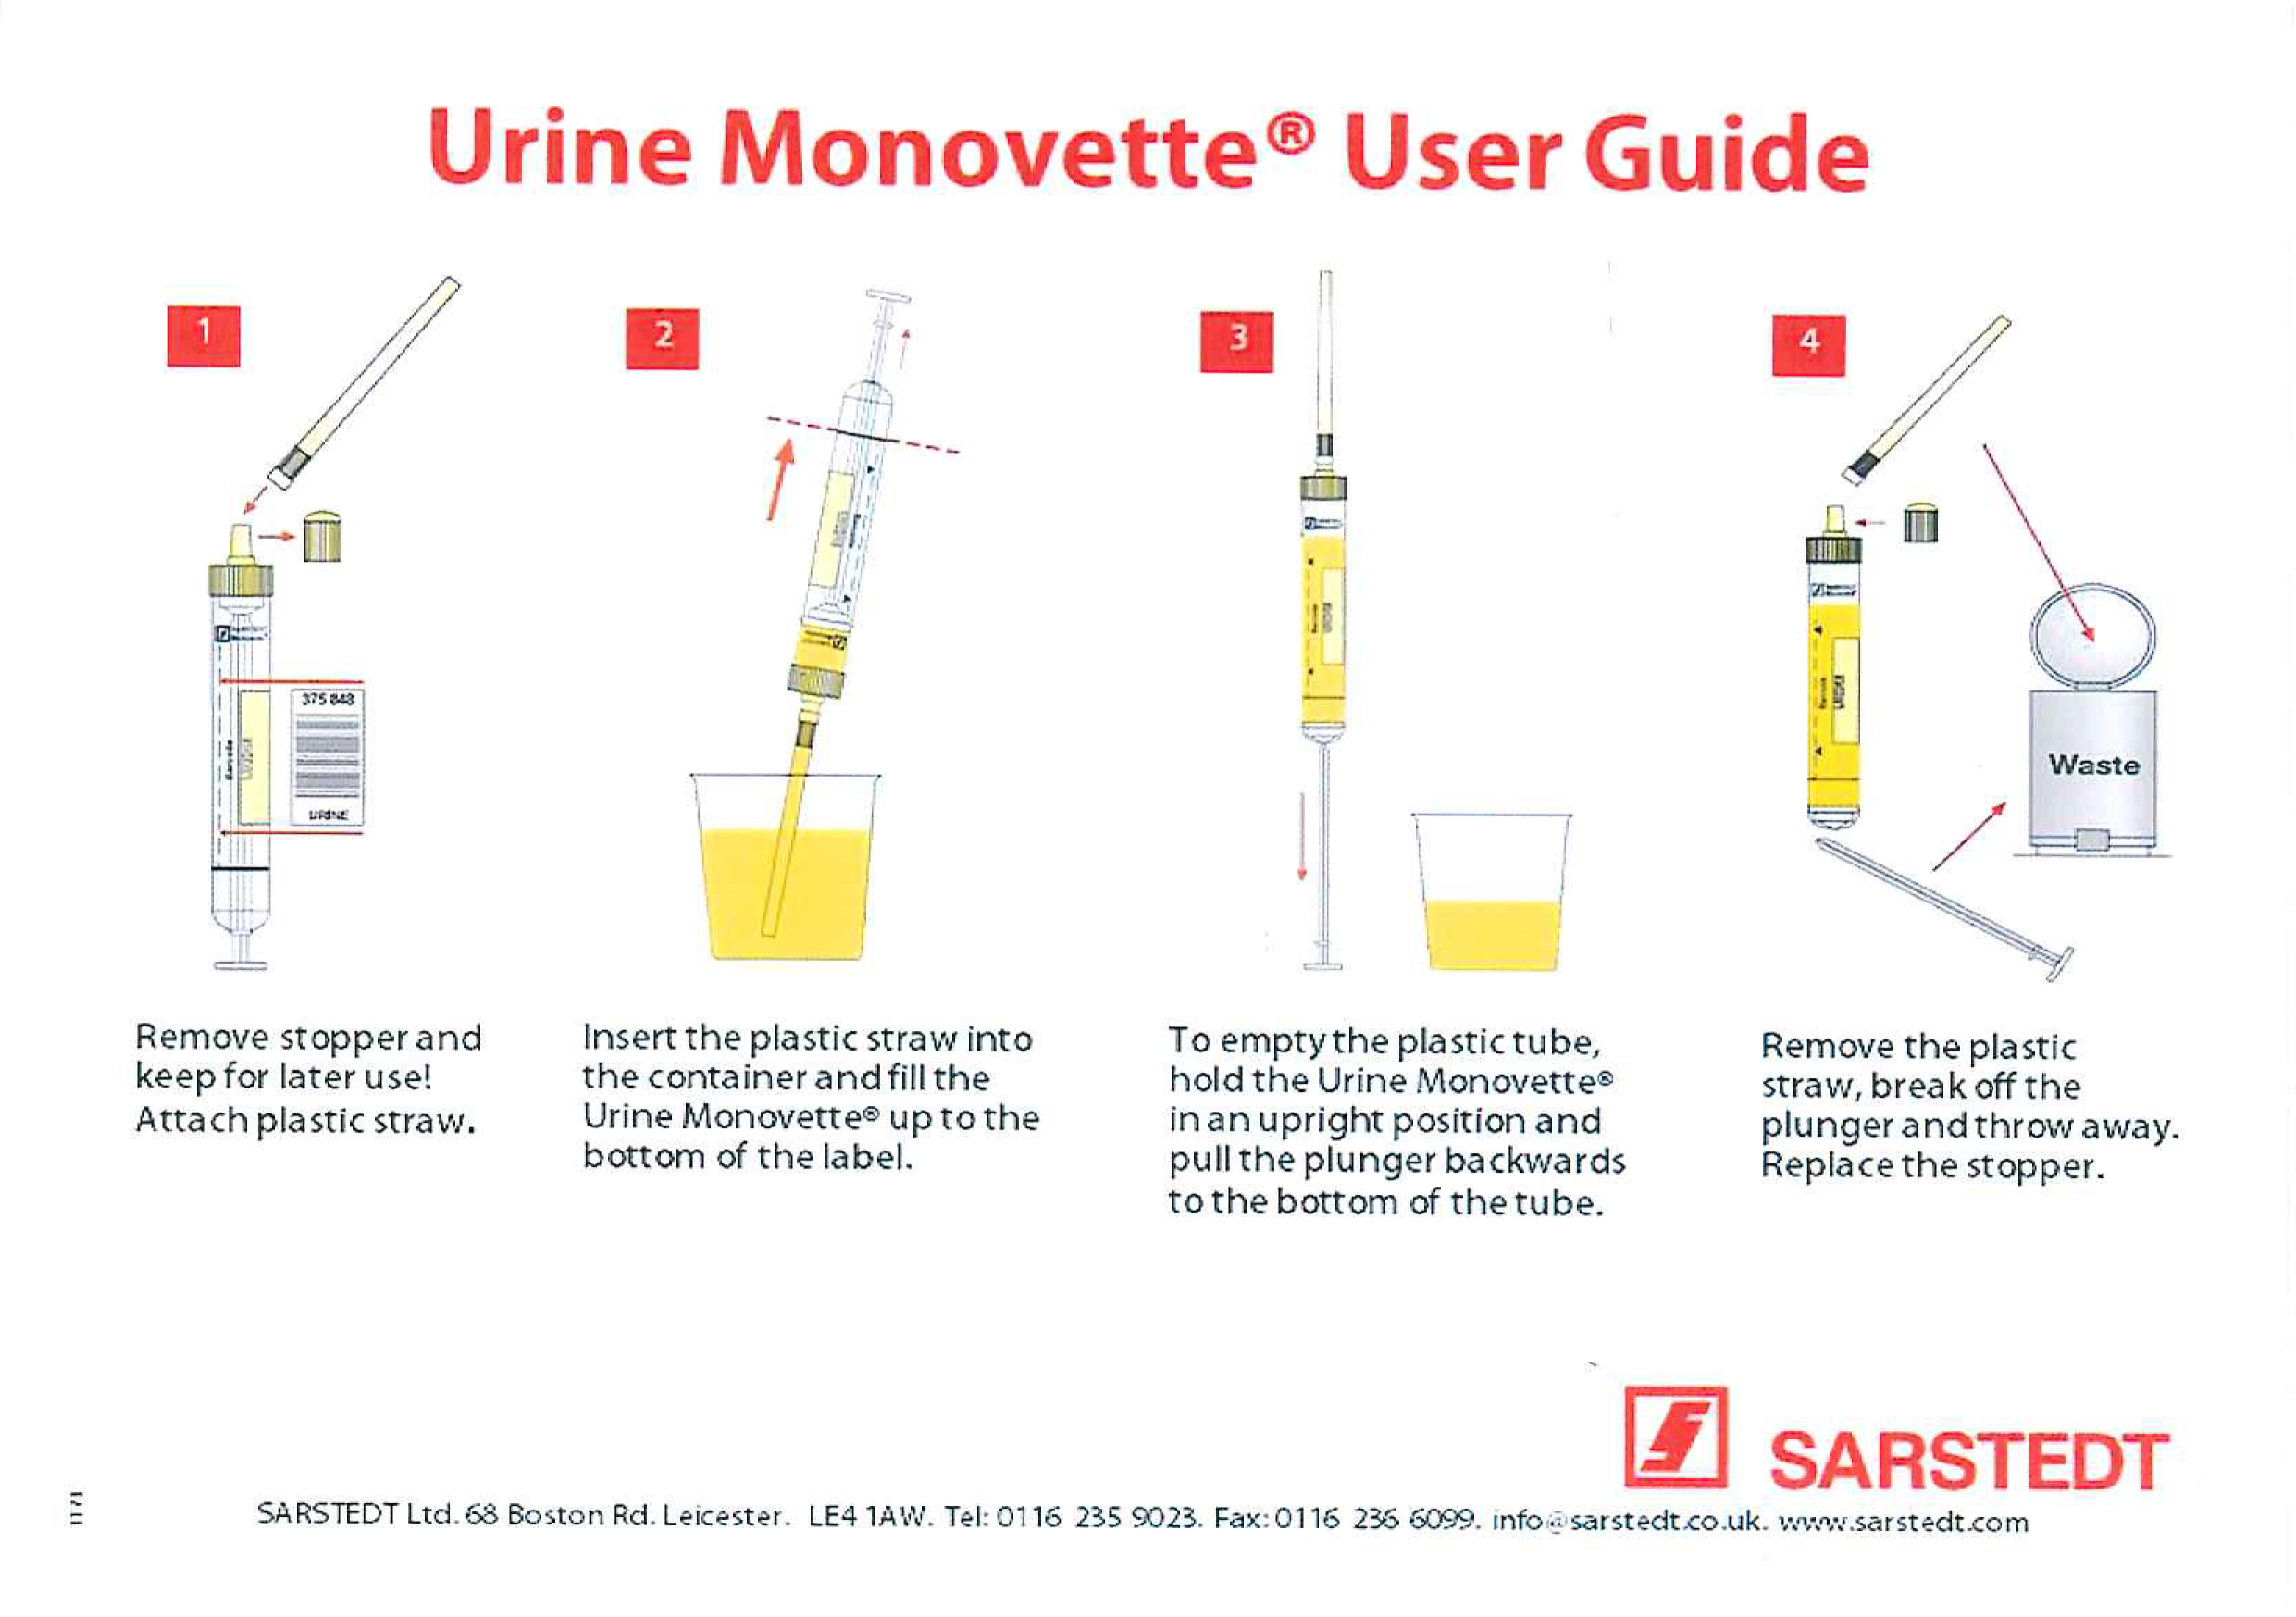 Urine User guide